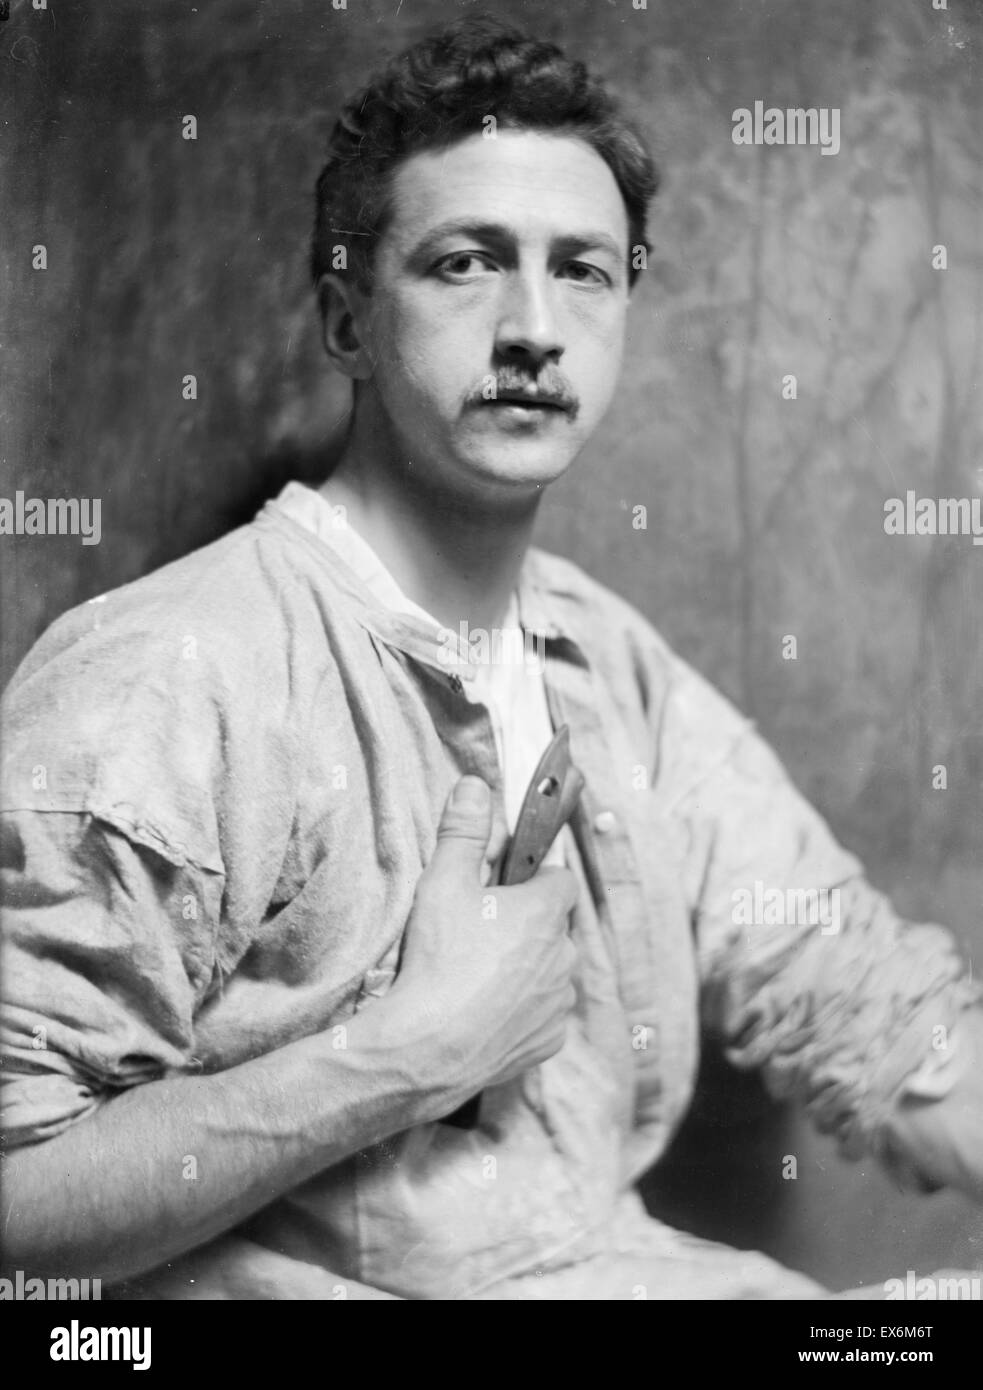 Photograph of Chester Beach (1881-1956) American sculptor who was known for his busts and medallic art. Dated 1908 - Stock Image